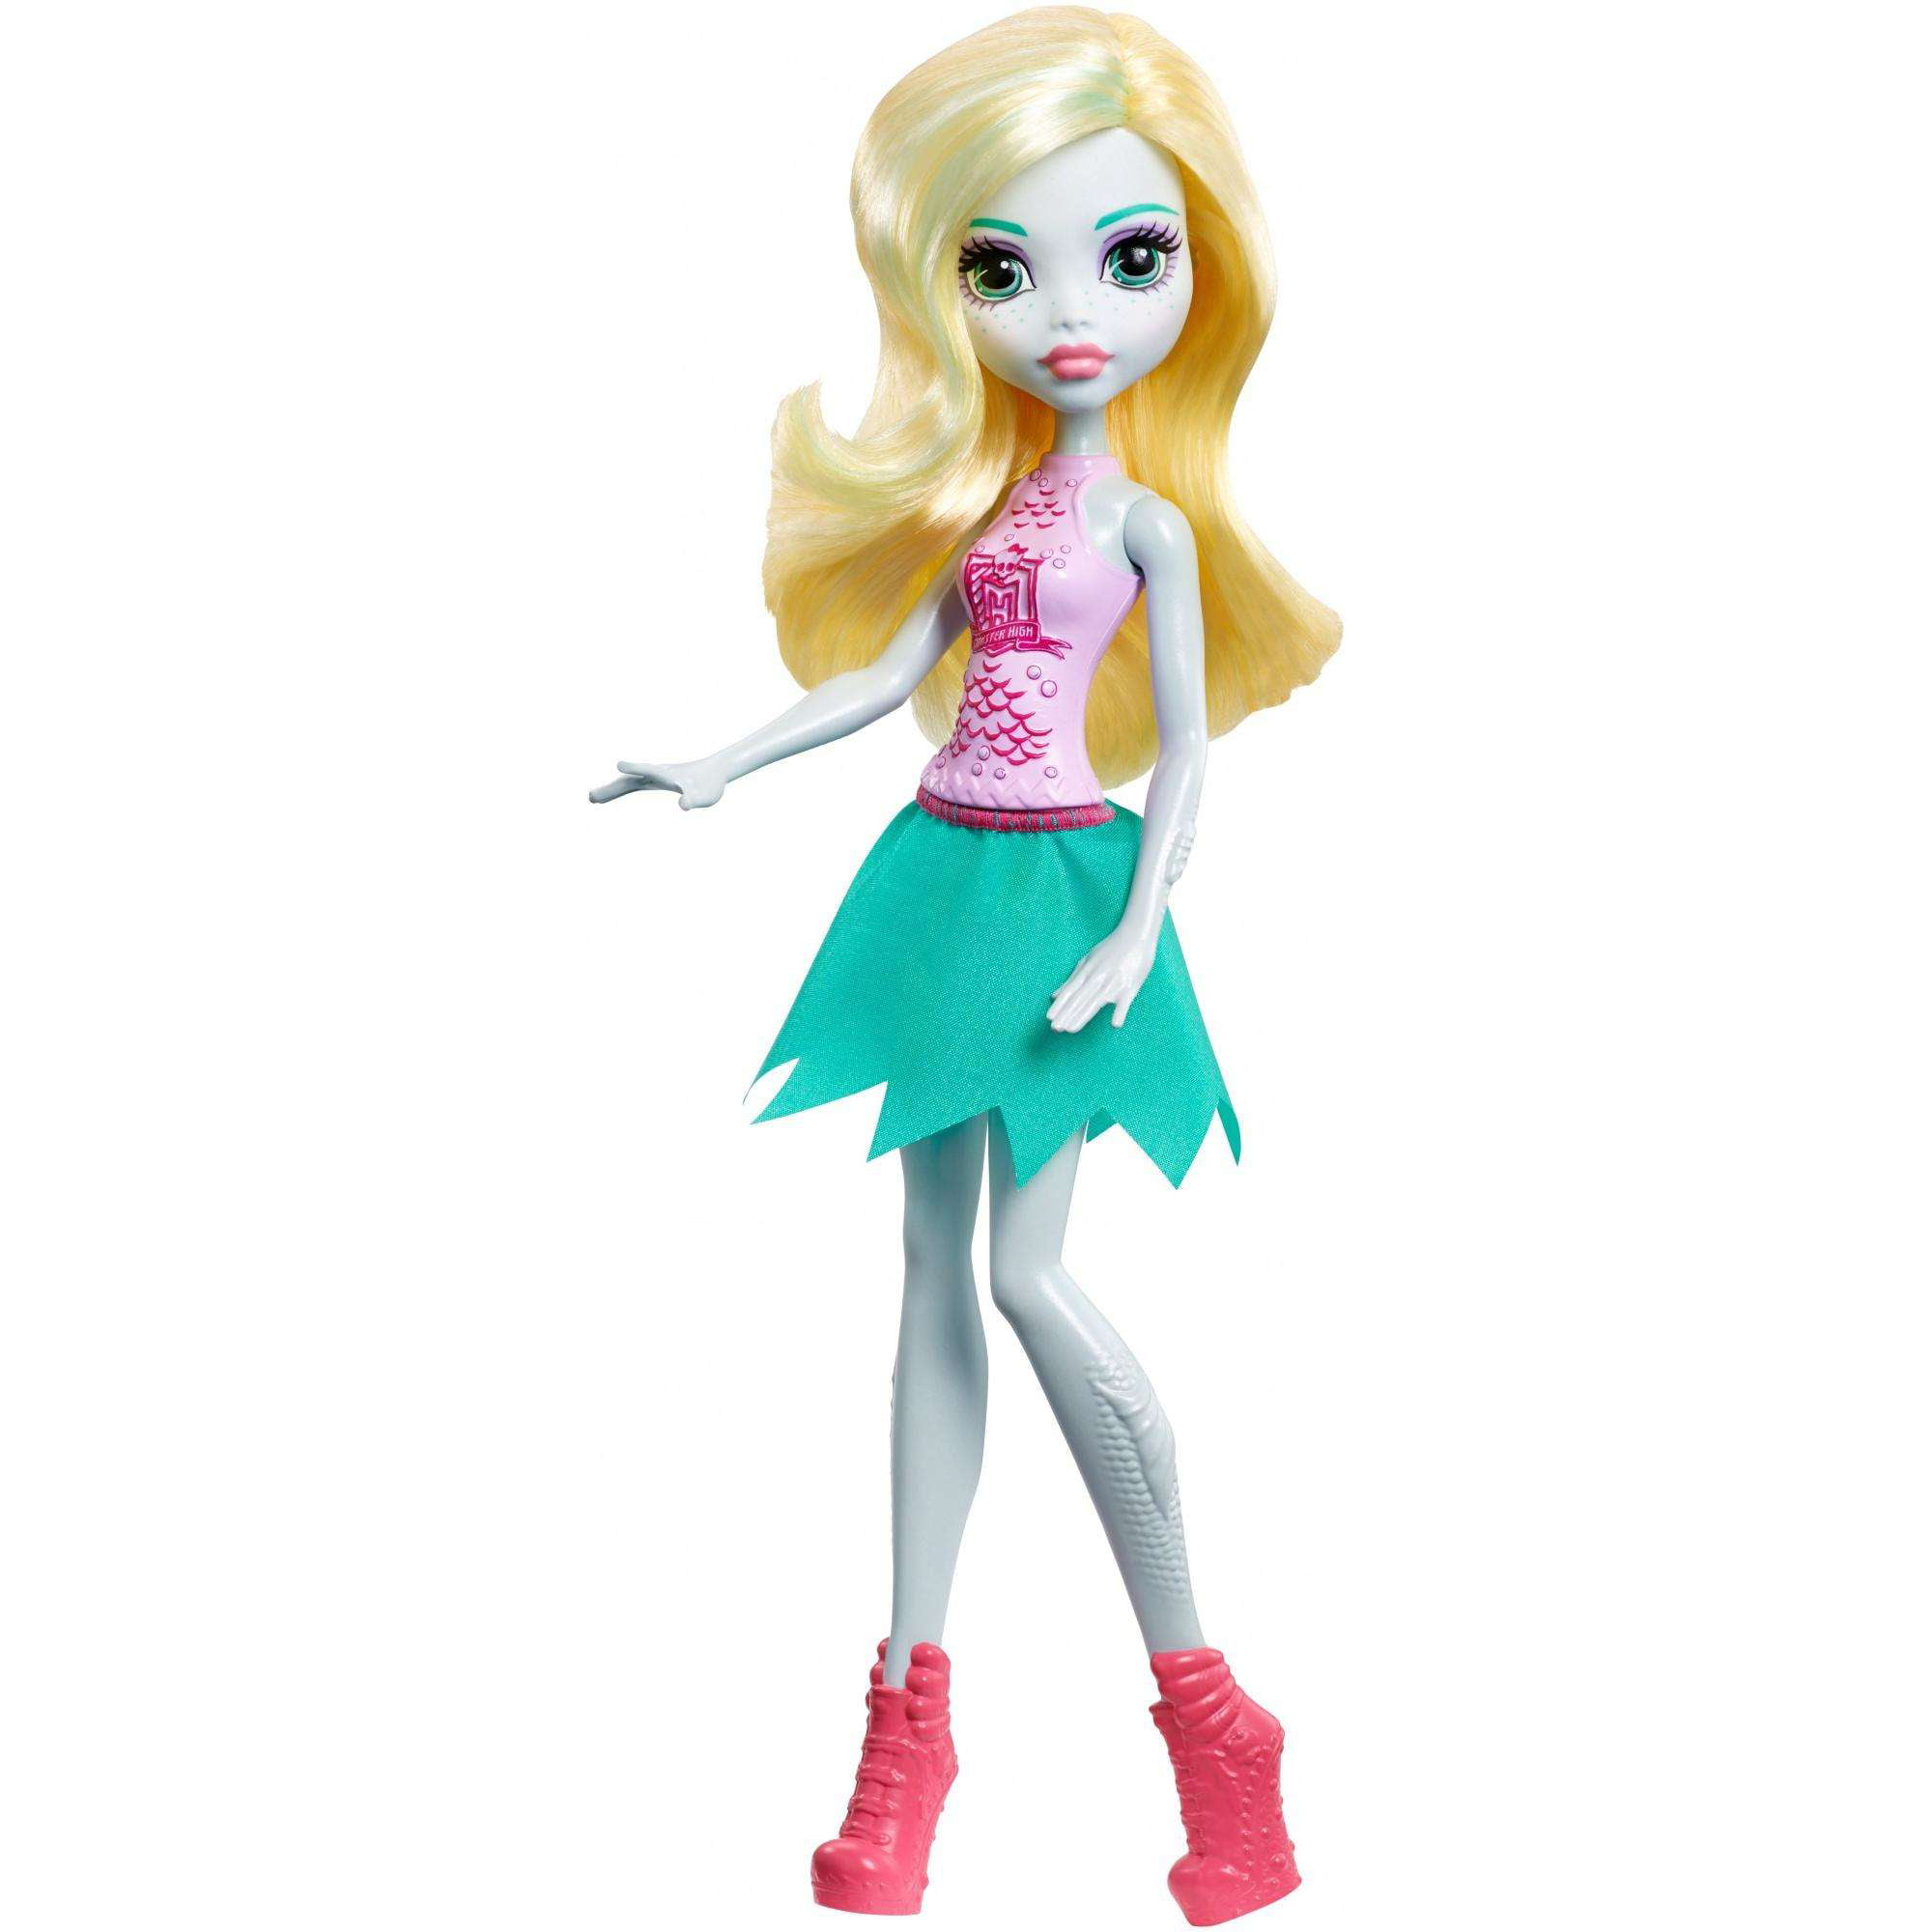 Monster High Cheerleader Lagoona Blue Doll by MATTEL INC.